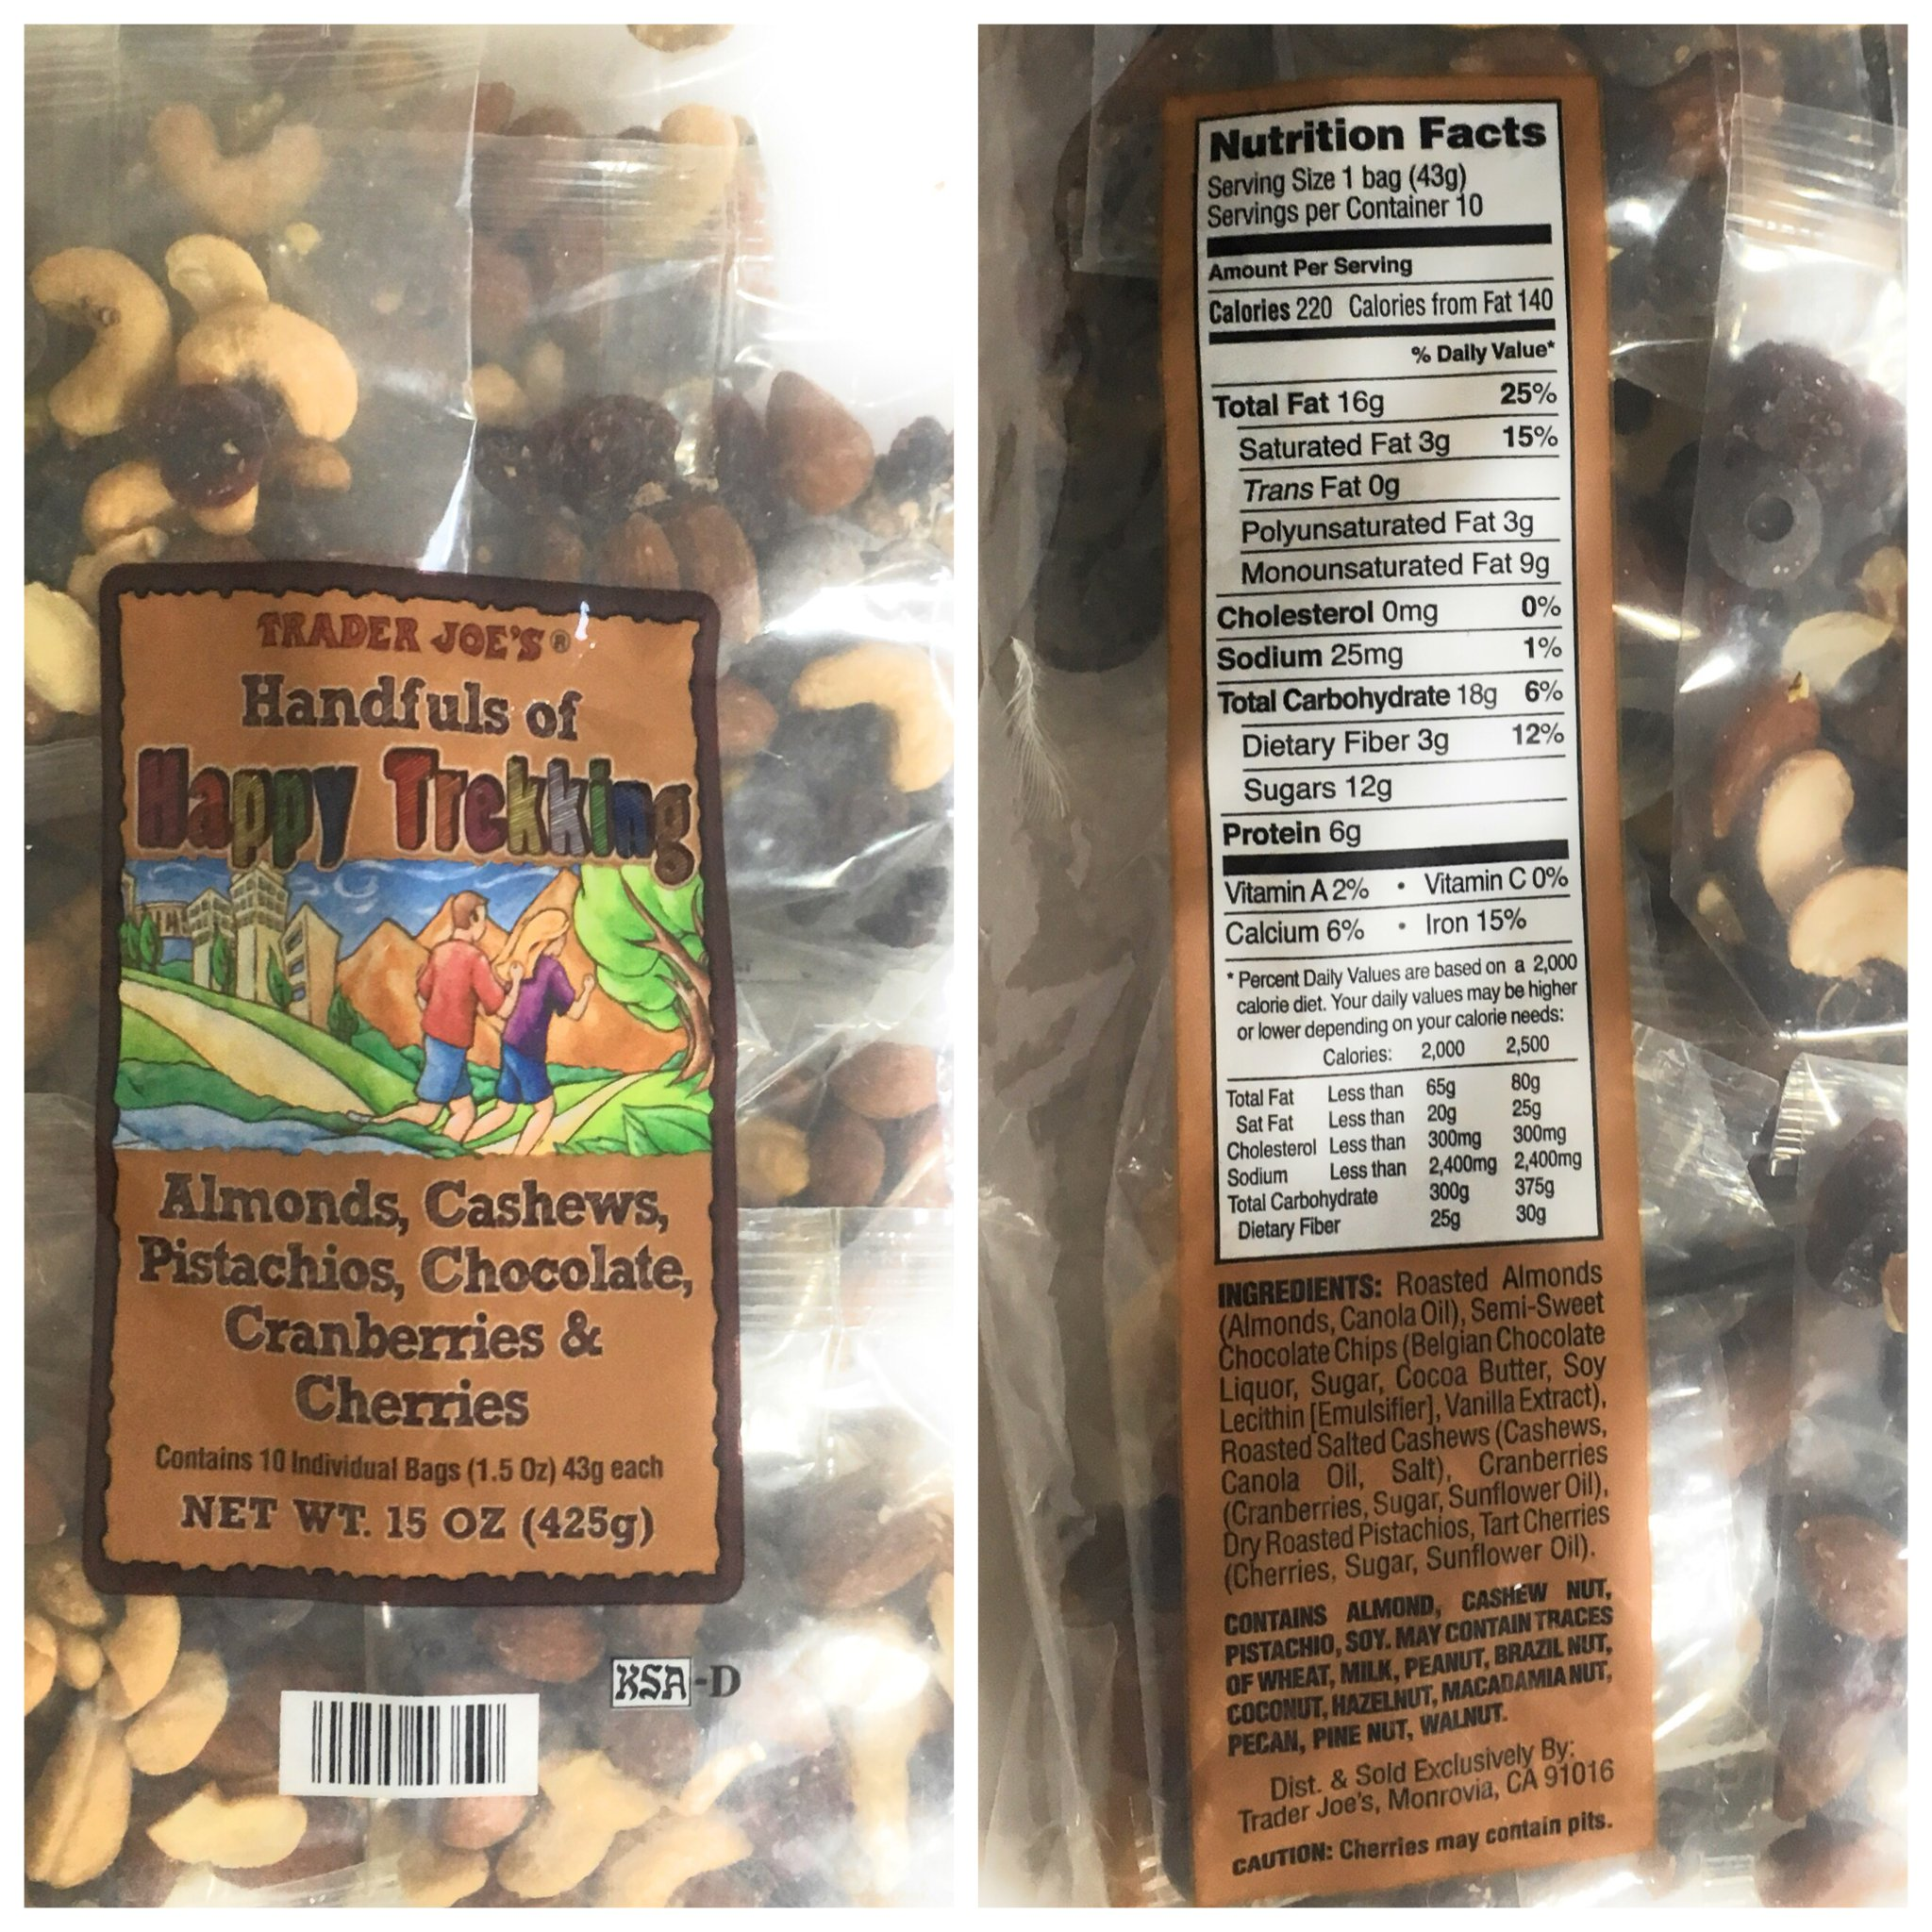 Trader Joes Trail Mix Snack Bundle - 1 Omega Trek, 1 Happy Trekking, and 1 Go Raw Pack - Each with Individual Mini Packets of Mixed Nuts - A Healthy Assortment for Adults and Kids by TJ's (Image #4)